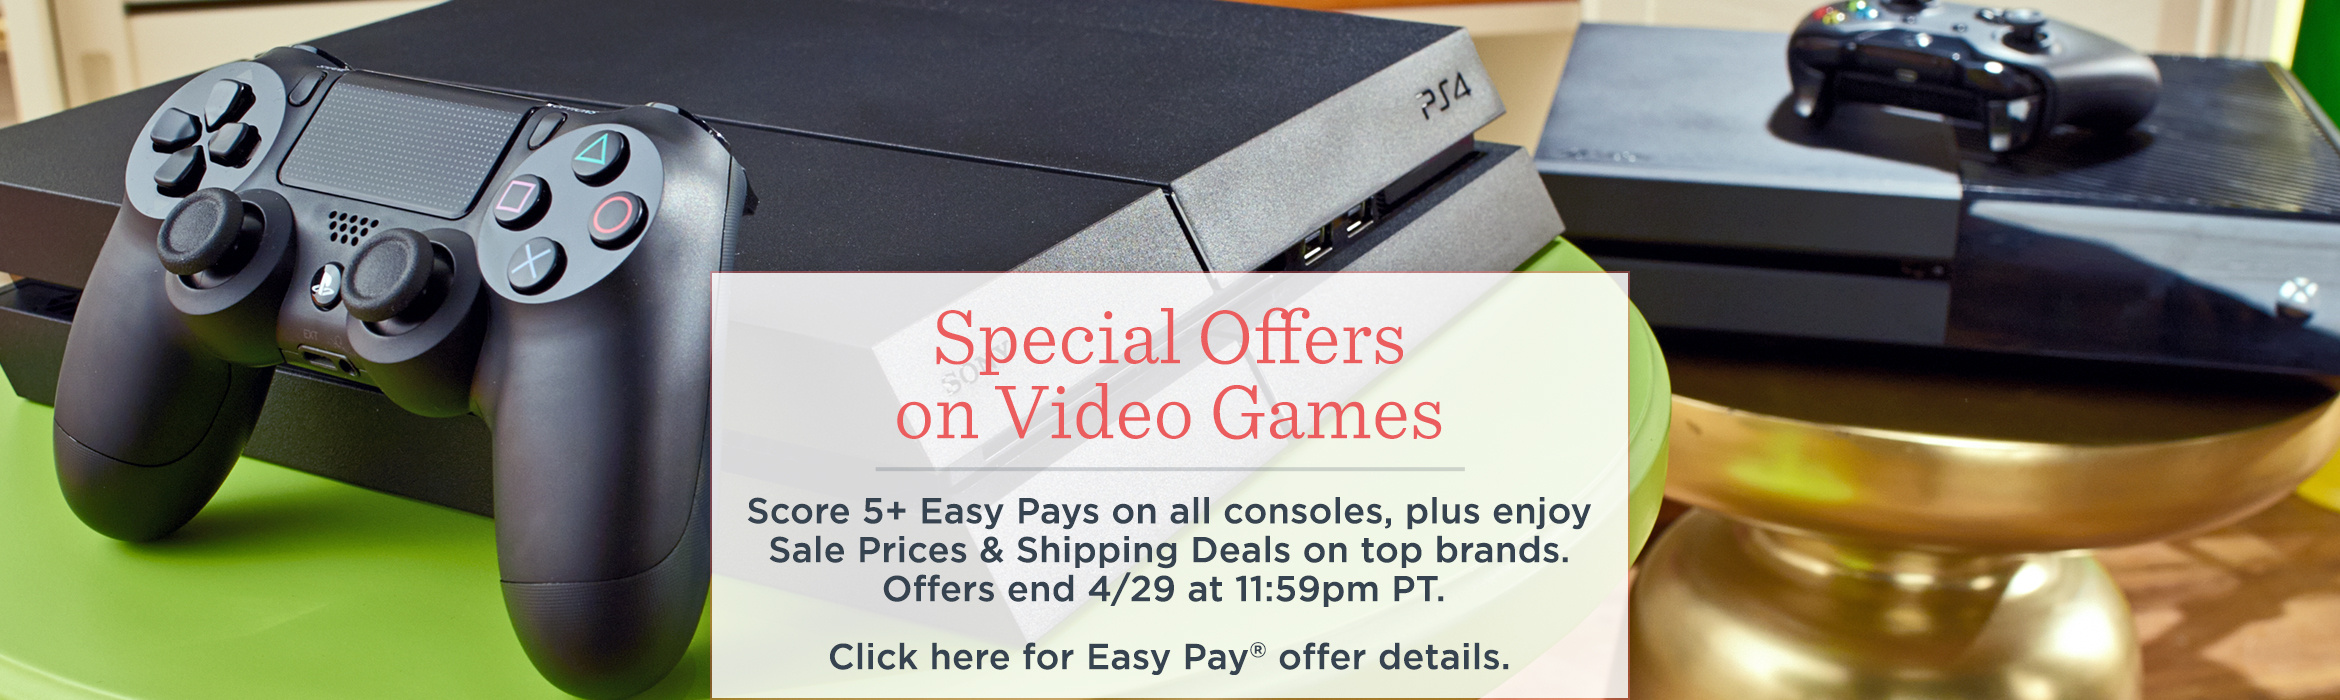 Special Offers on Video Games.  Score 5+ Easy Pays on all consoles, plus enjoy Sale Prices & Shipping Deals on top brands. Offers end 4/29 at 11:59pm PT.   Click here for Easy Pay® offer details.